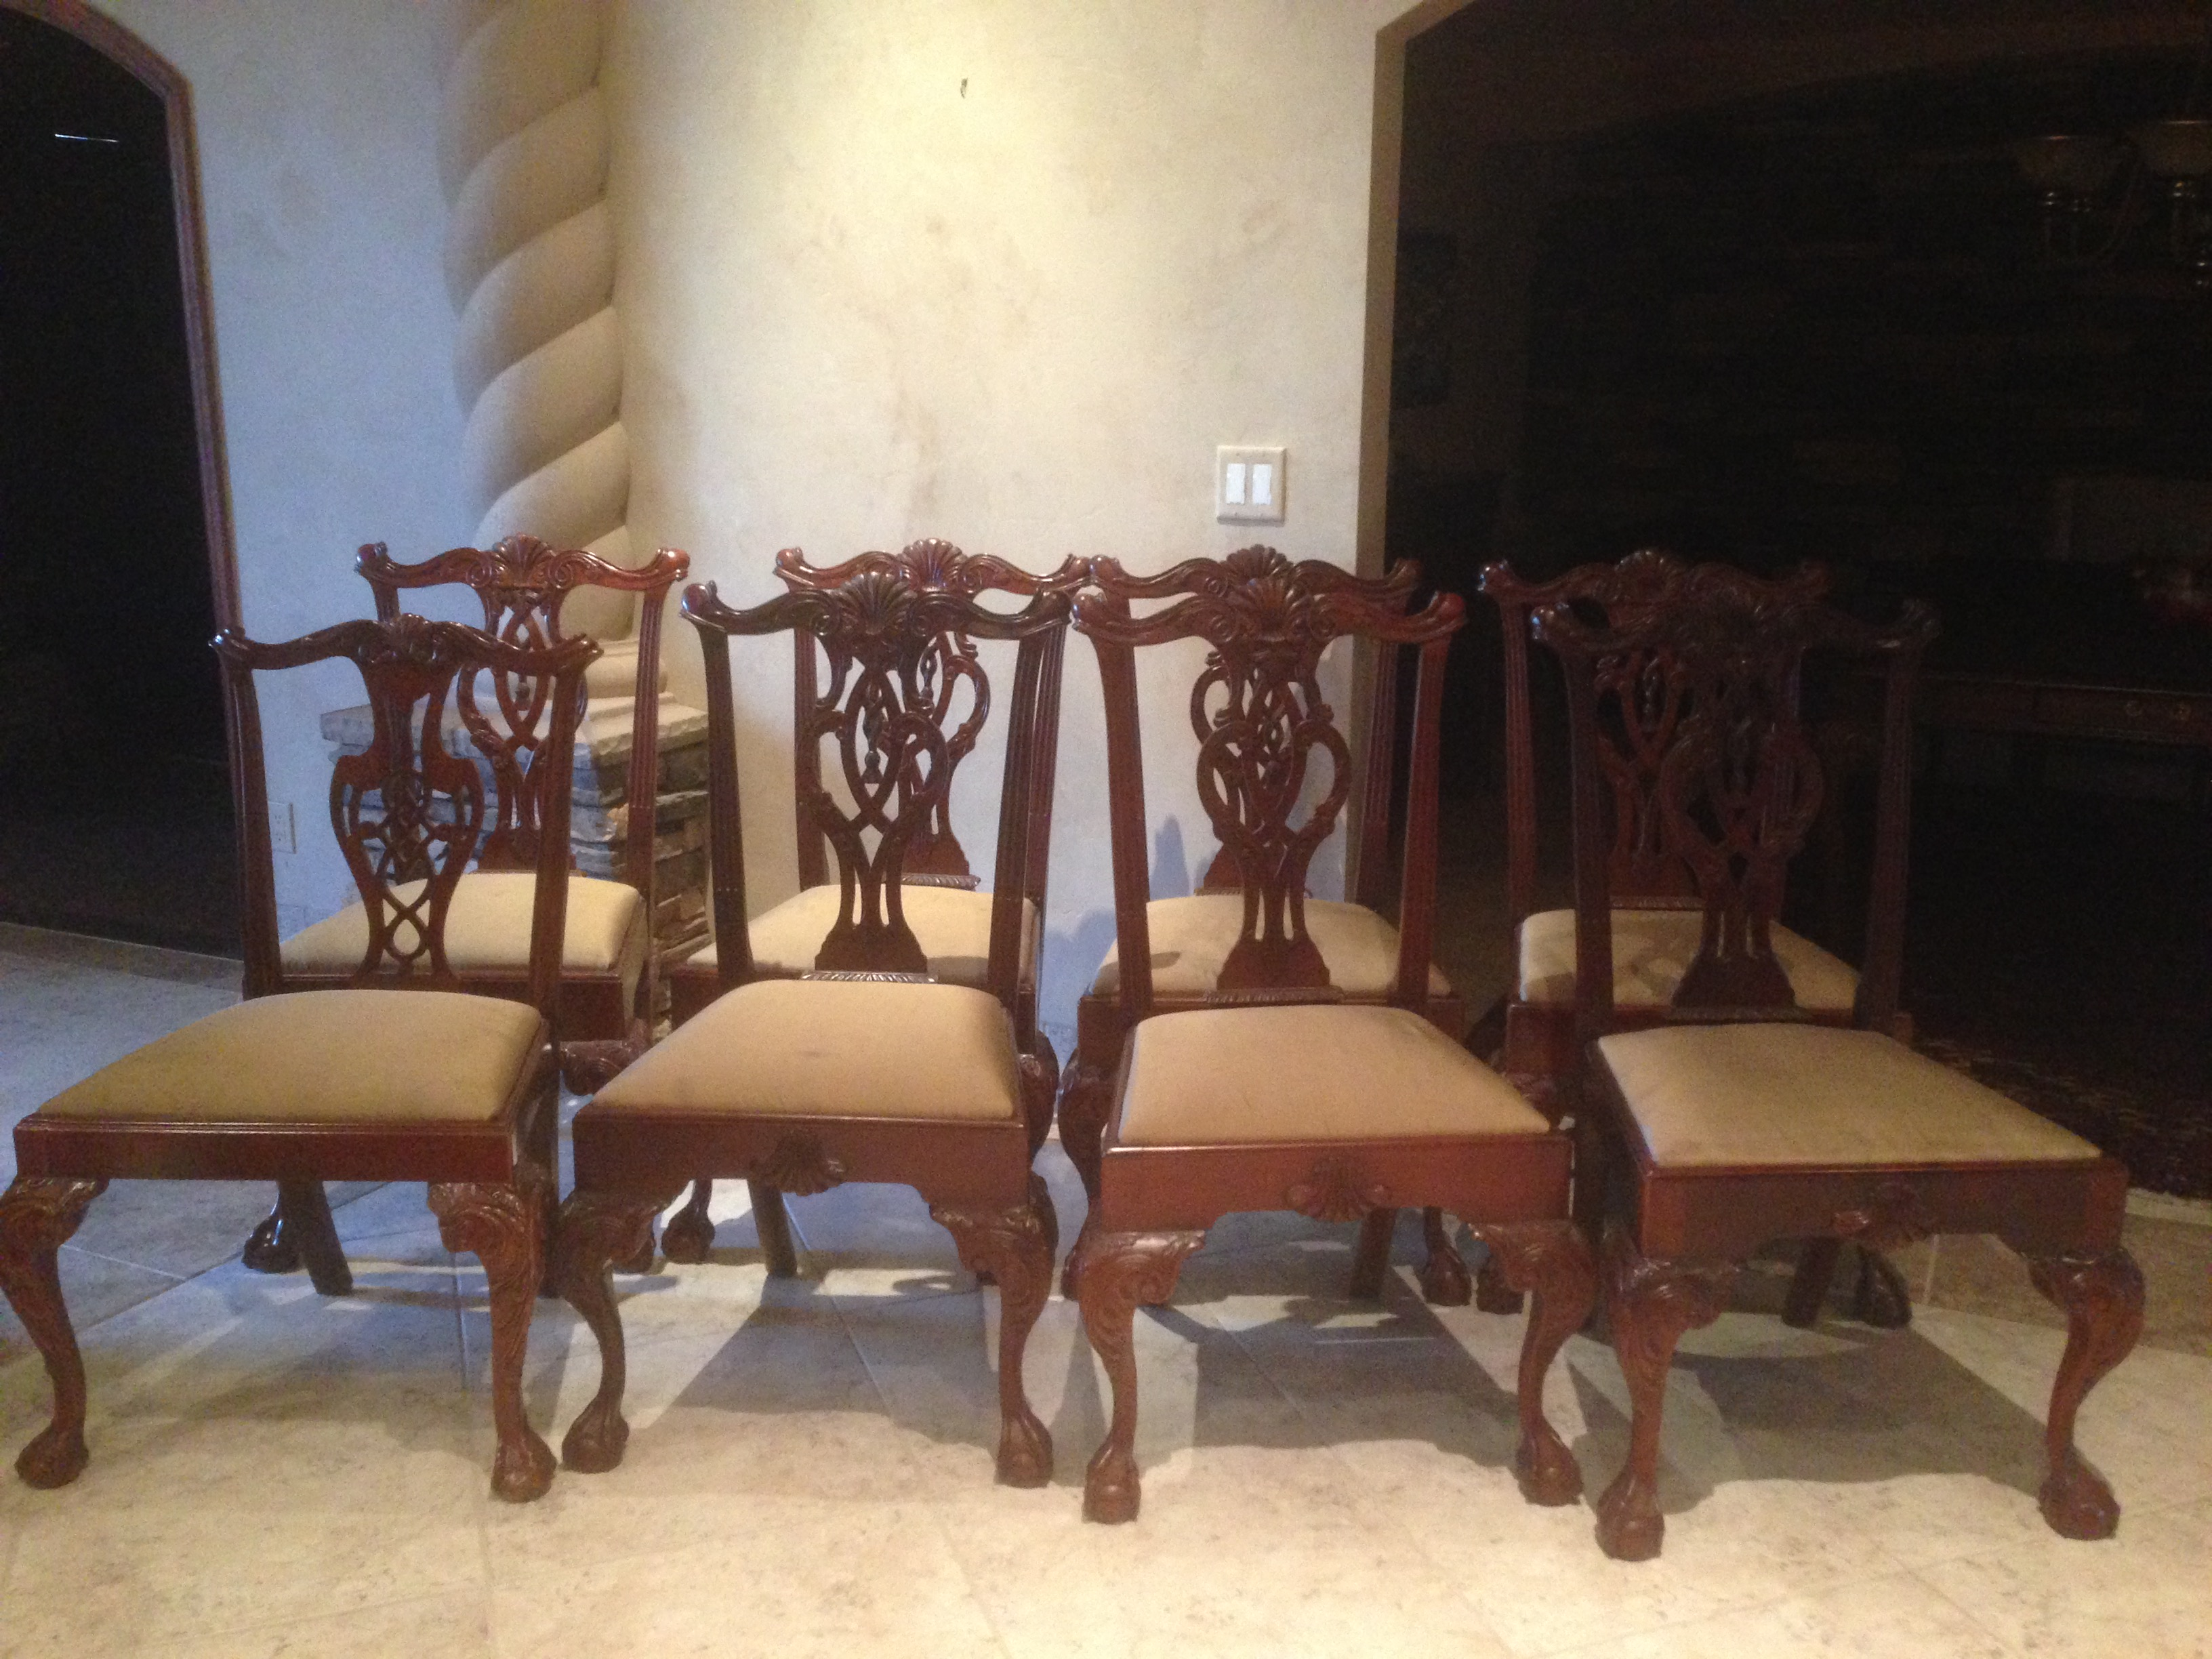 Genial Hickory Chair Mt. Vernon Dining Chairs   Set Of 8   Image 2 Of 8